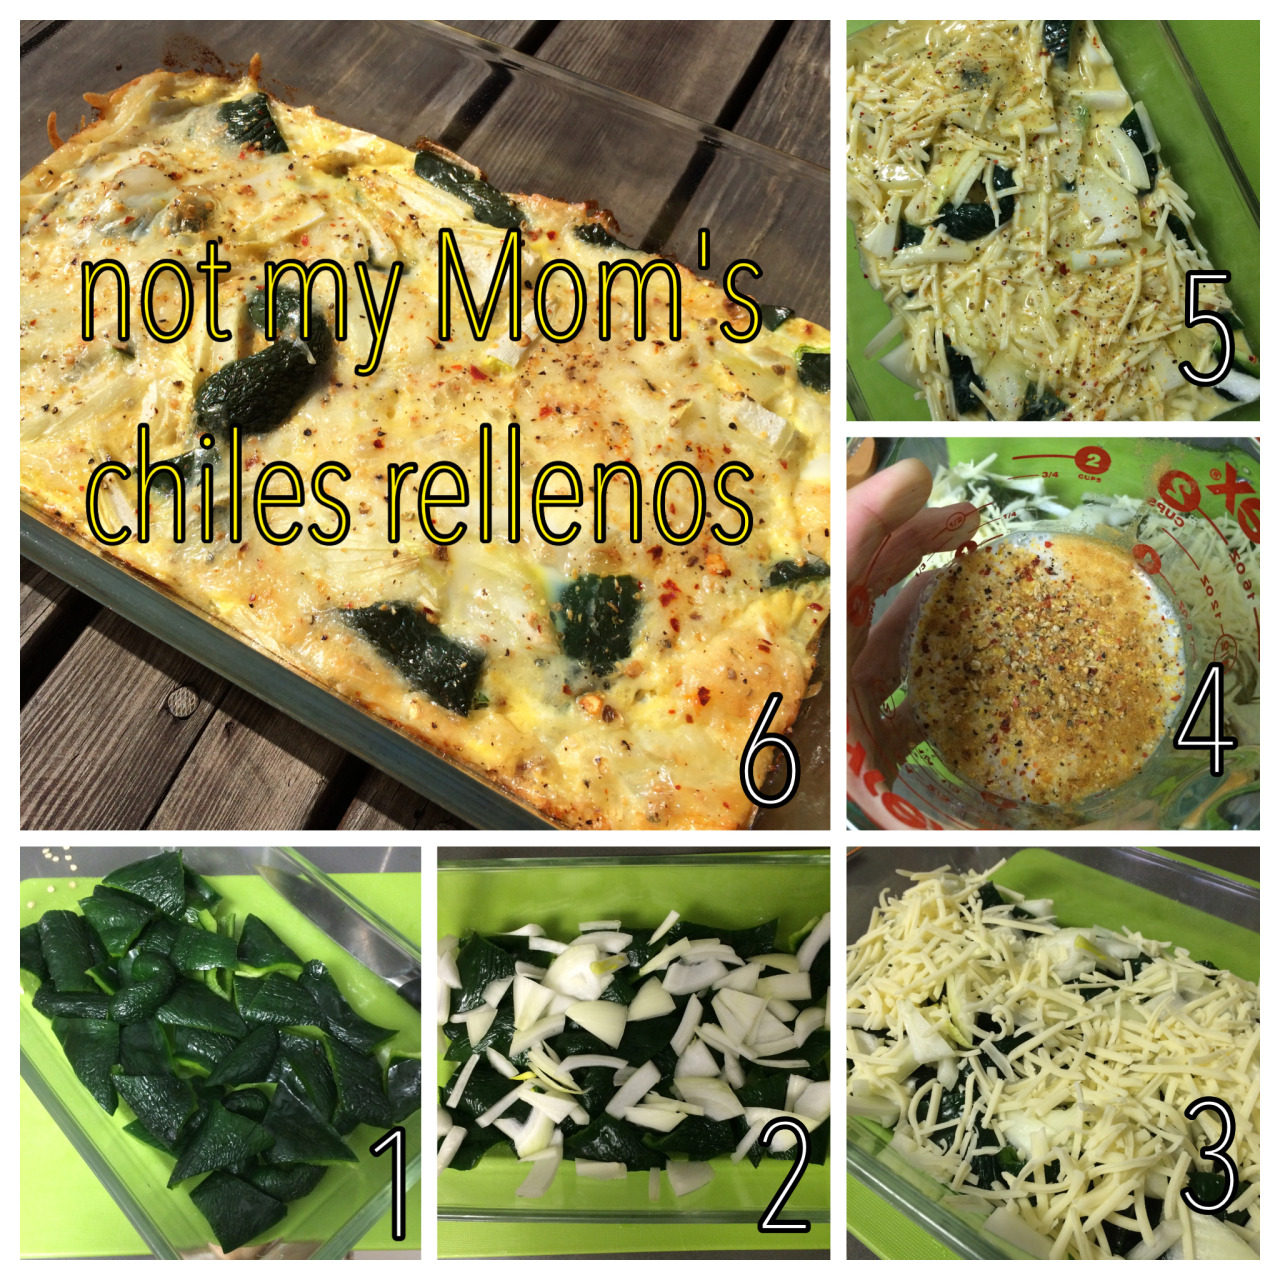 """I'm all about saving time these days. These are a lazy version of chiles rellenos, but nonetheless, equally delicious. Enjoy!   Ingredients:    2 whole, peeled, seeded green poblanos  ½ cup cheddar cheese, grated   3 whole extra large eggs   2/3 cup of 2% milk  ½ medium onion, sliced   ½ teaspoon of  Everyday Seasoning   (Trader Joe's product with sea salt, mustard seeds, black peppercorns, coriander, onion, garlic, paprika)    ¼ teaspoon Cayenne pepper (optional)    Instructions:   Preheat oven to 325 degrees.   Cut chiles in 2-3"""" pieces. Add a single layer of chilies on the bottom of a 9 x 13-inch baking dish.   Top chiles with the sliced onions.  Add grated cheese.  Mix together eggs, milk, and seasoning. Pour egg mixture all over the top.  Bake for 40-45 minutes, or until slightly golden.  Voila! Cut into squares and serve with corn tortillas, side salad, or on it's own. This meal is great for breakfast, lunch, or dinner!     Recipe slightly tweaked from  The Pioneer Woman."""